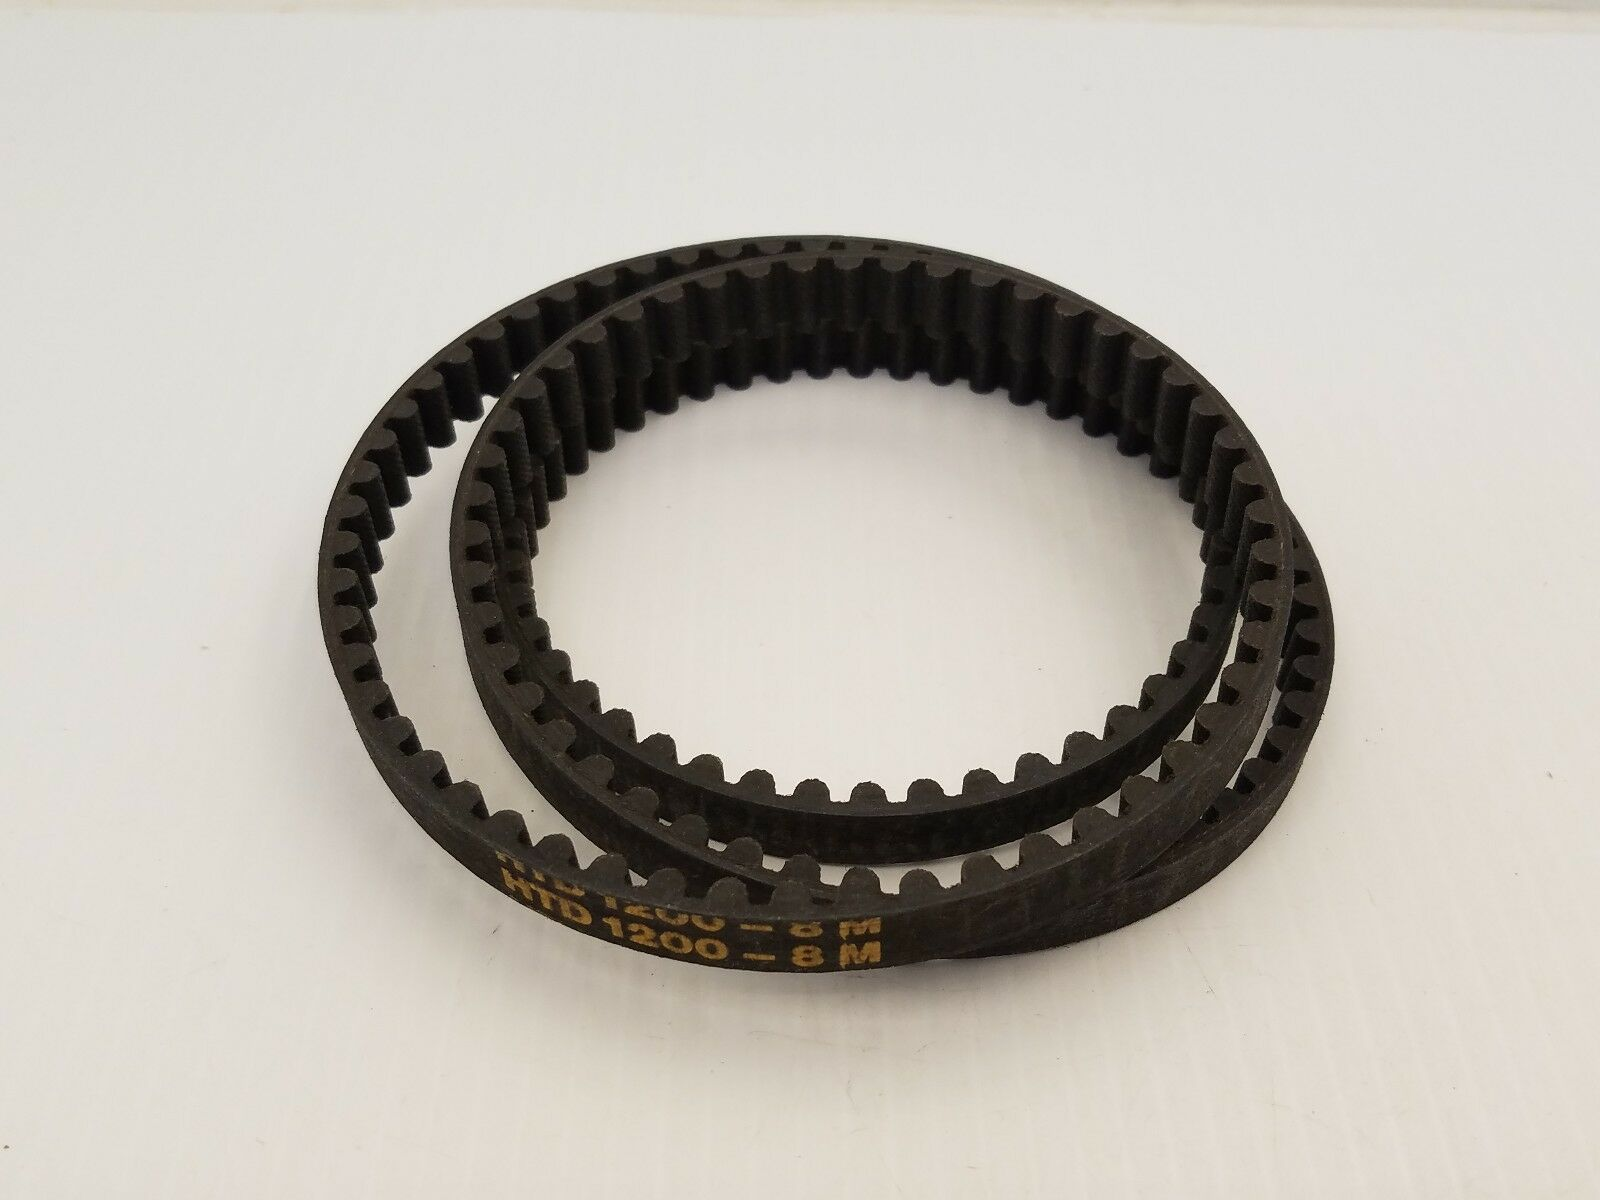 D/&D PowerDrive 420-3M-10 Timing Belt